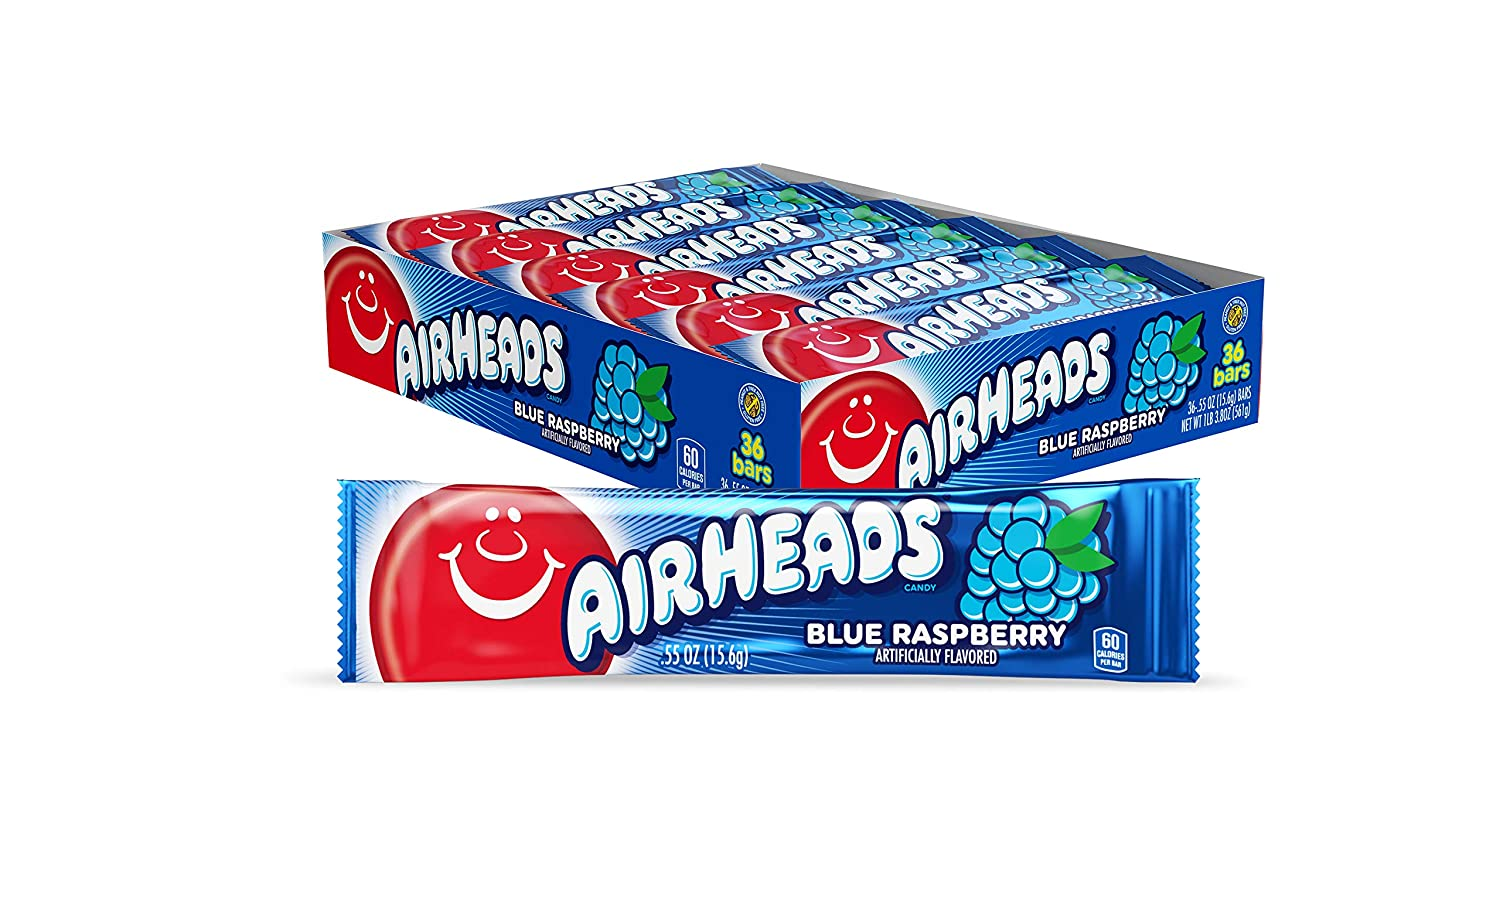 Airheads Candy, 0.55oz (Pack of 36): Blue Raspberry $5.26, Cherry $5.22 or less - FS w/ S&S